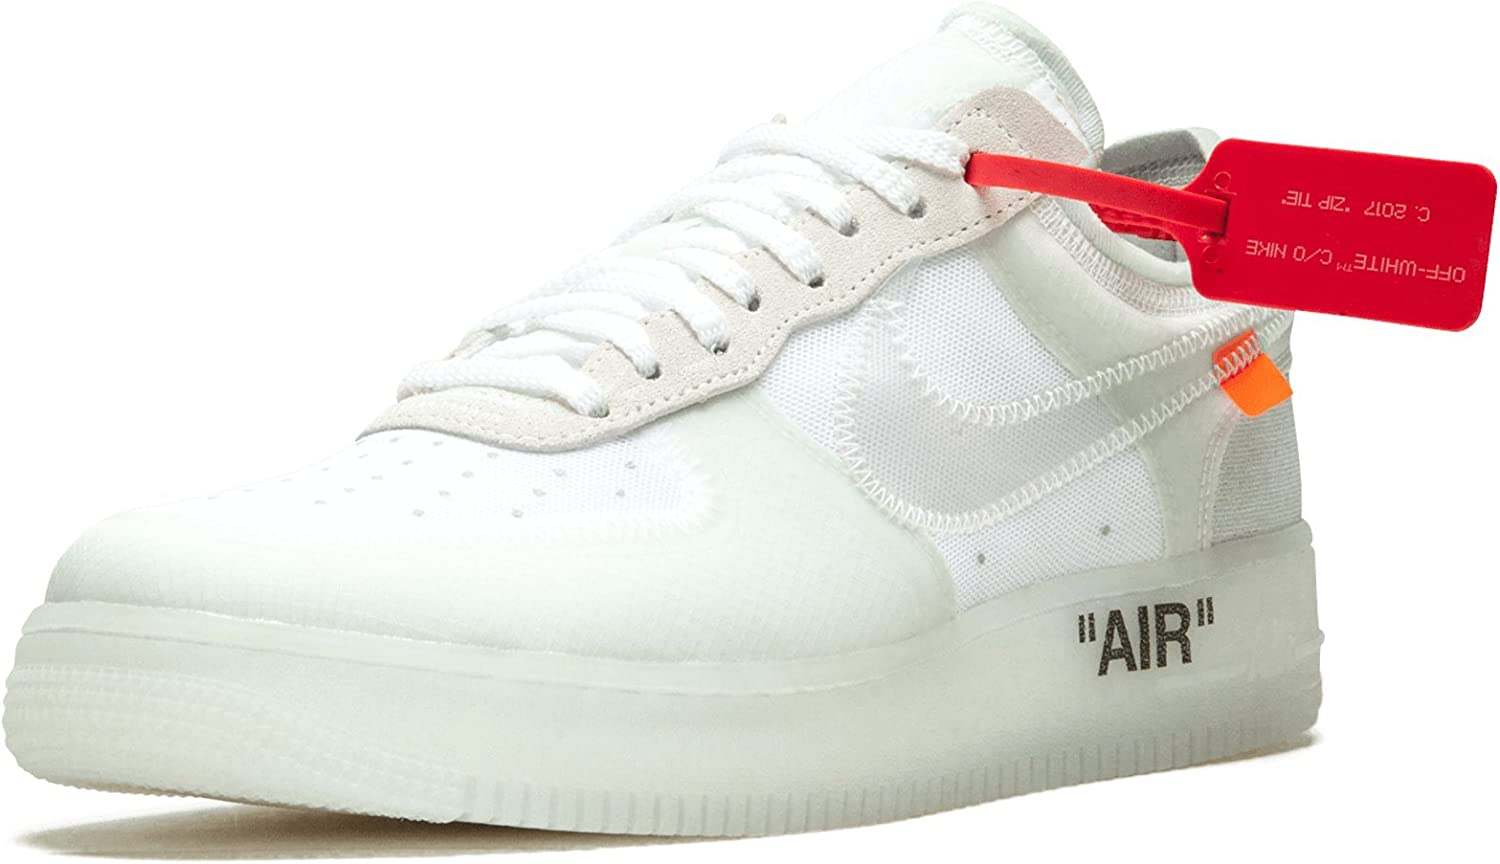 NIKE The 10 AIR Force 1 Low 'Off-White